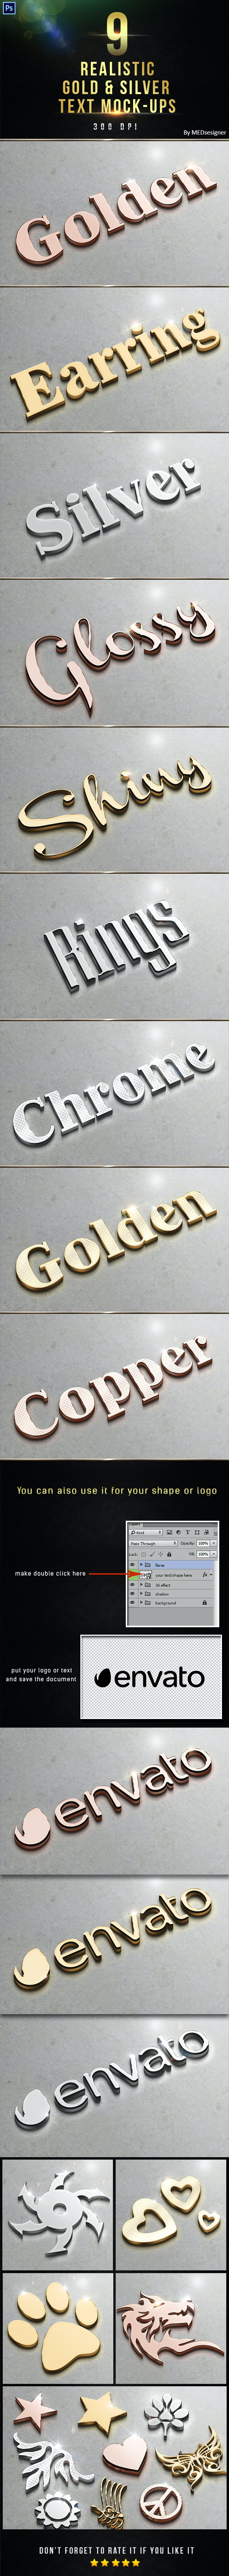 9 3D Realistic Gold & Silver Text Mock-ups - Text Effects Actions